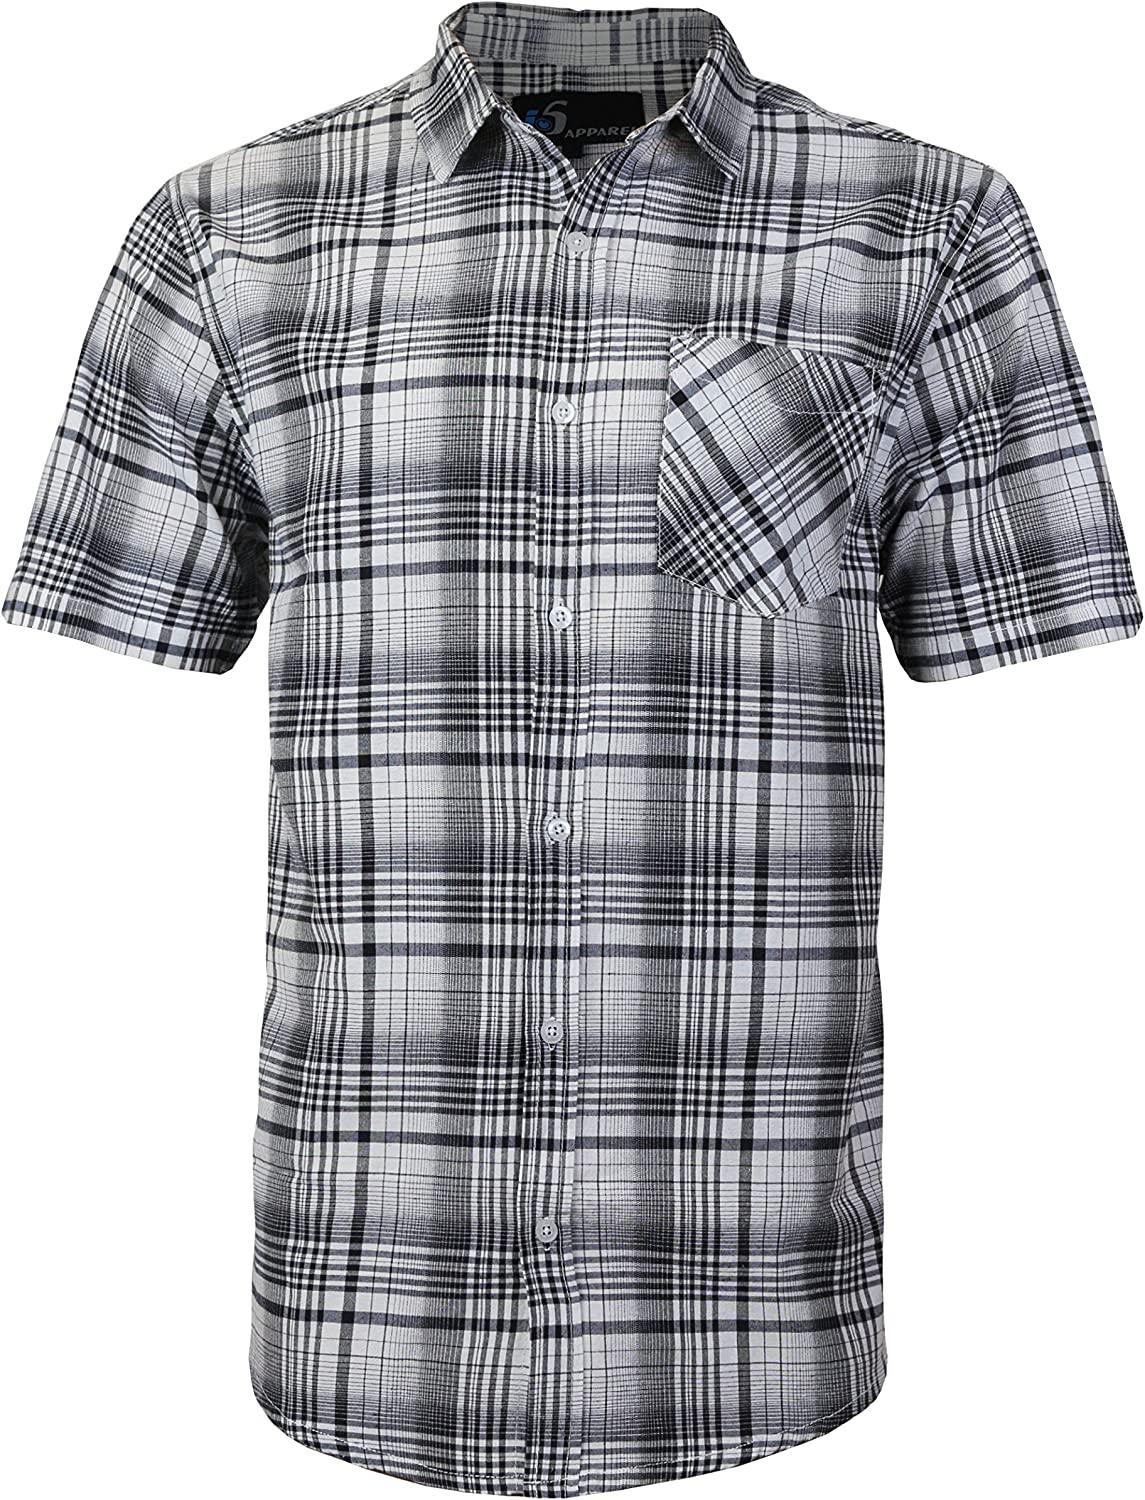 Los Angeles Mall Men's Plaid Checkered Button Down Sleeve Casual Fi Short Regular Selling rankings